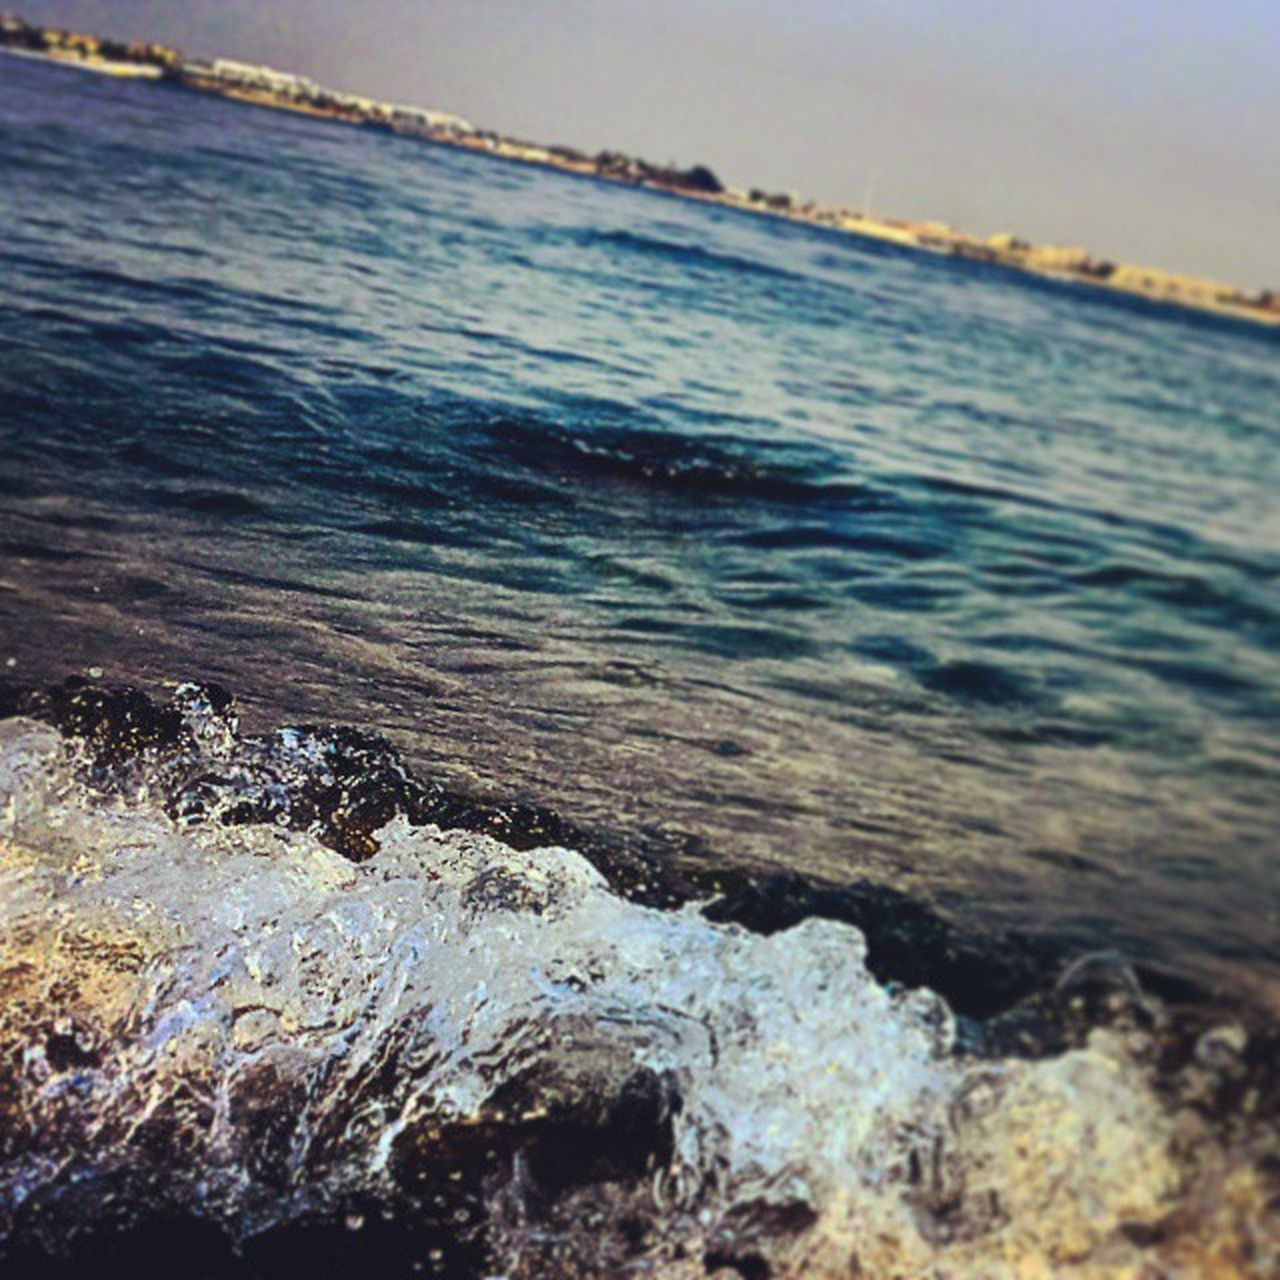 sea, water, nature, beauty in nature, no people, outdoors, day, beach, wave, scenics, blue, close-up, sky, horizon over water